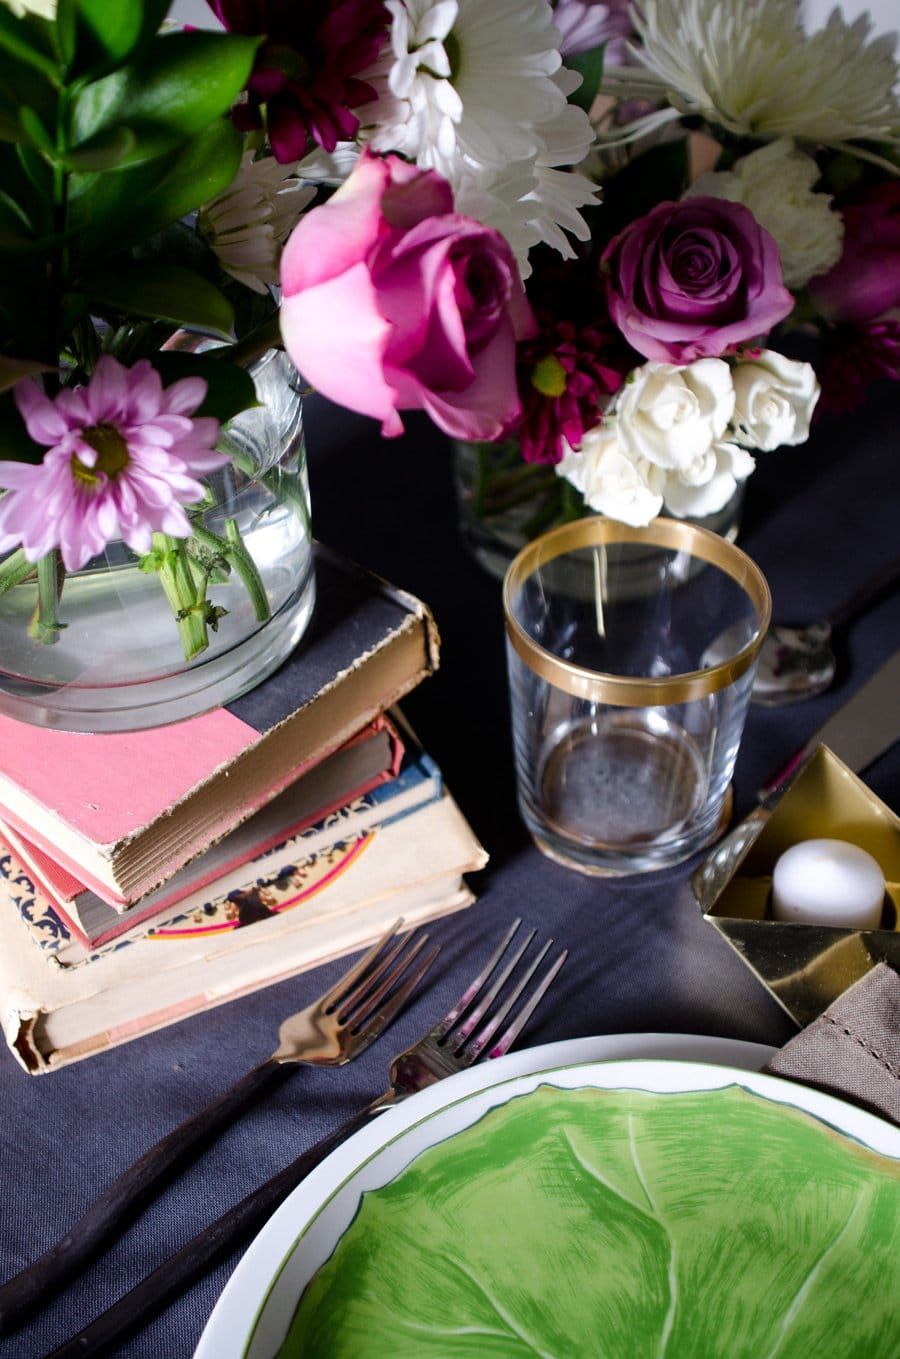 MODERN & ROMANTIC VALENTINE'S DAY TABLE | Thou Swell https://thouswell.com/modern-romantic-valentines-day-table